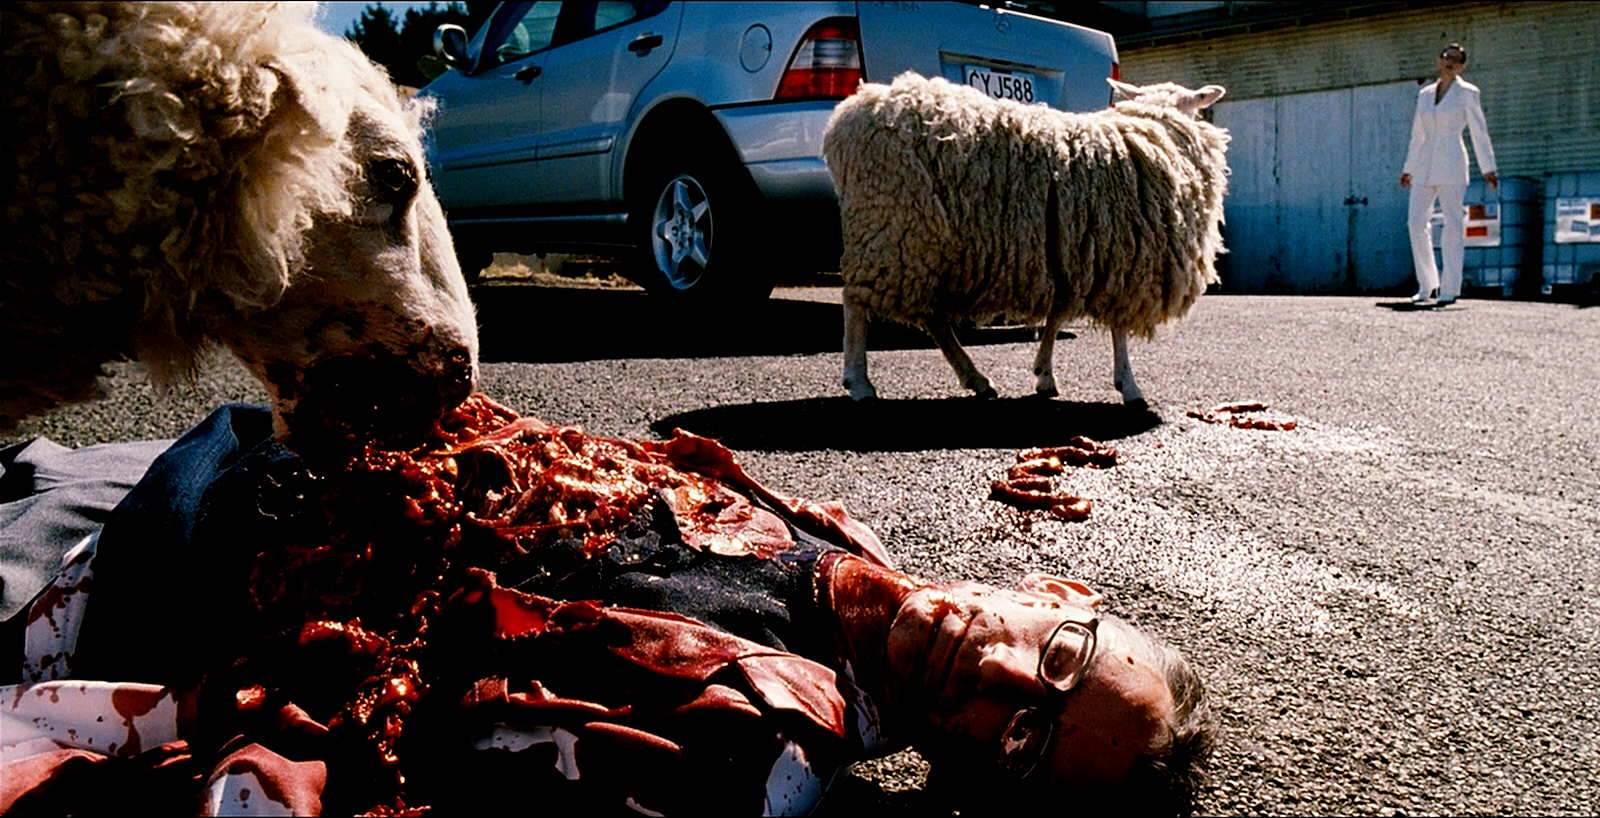 Black Sheep comedy-horror